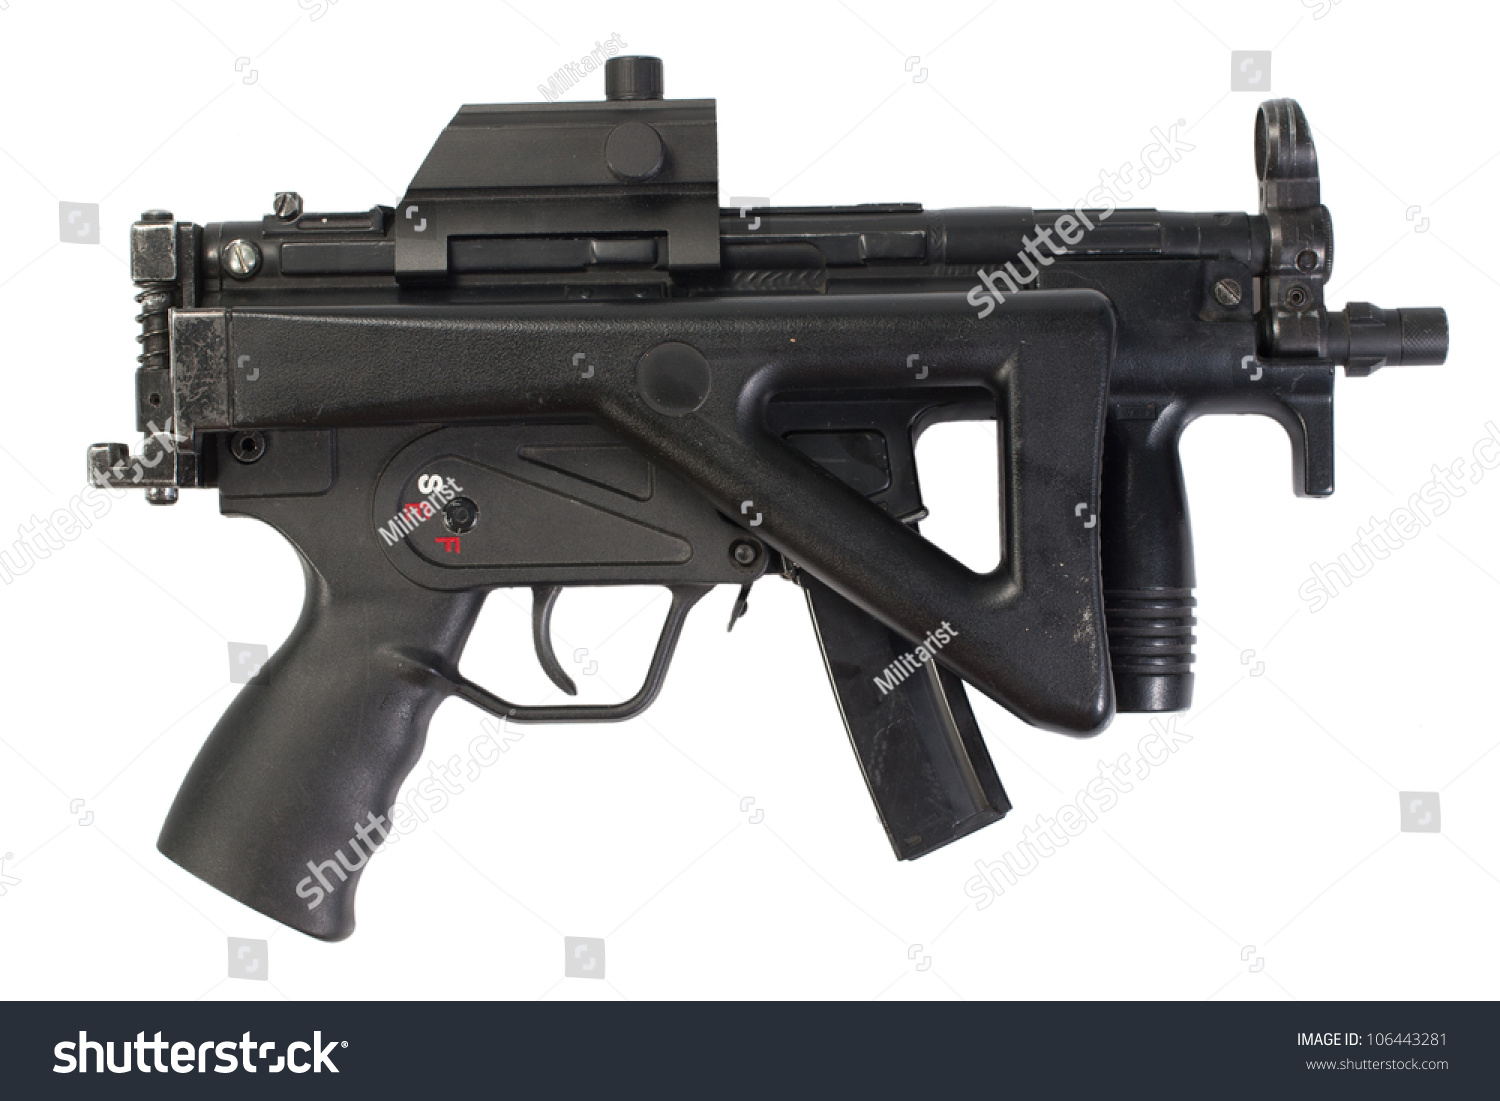 1000  images about Weapons - Heckler & Koch MP5 on Pinterest